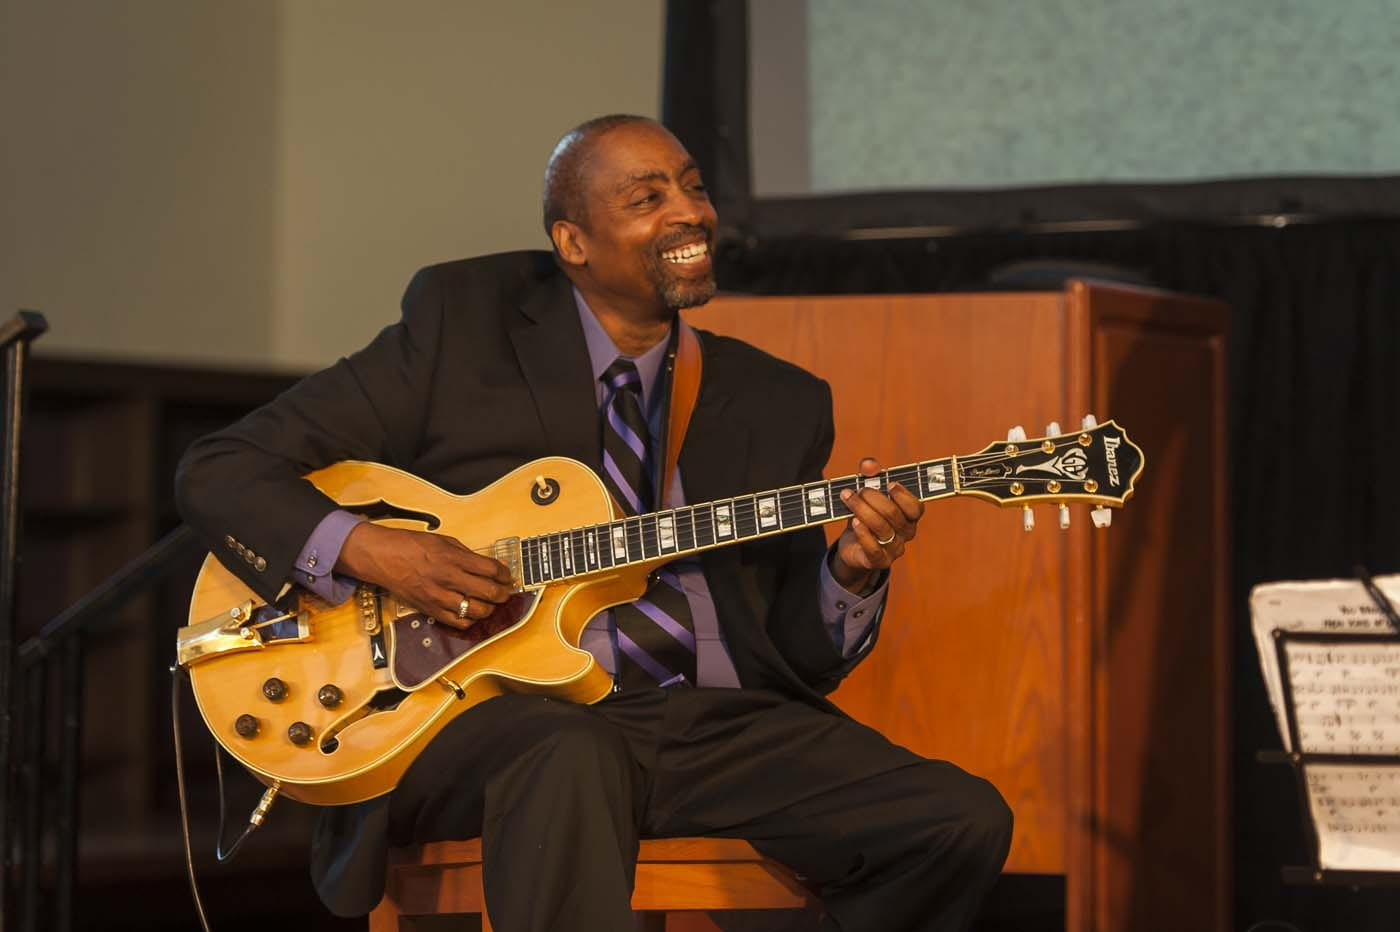 Dressed in a black suit, purple shirt, and purple and black tie, Dr. Goins smiles at his band mates while playing his guitar.